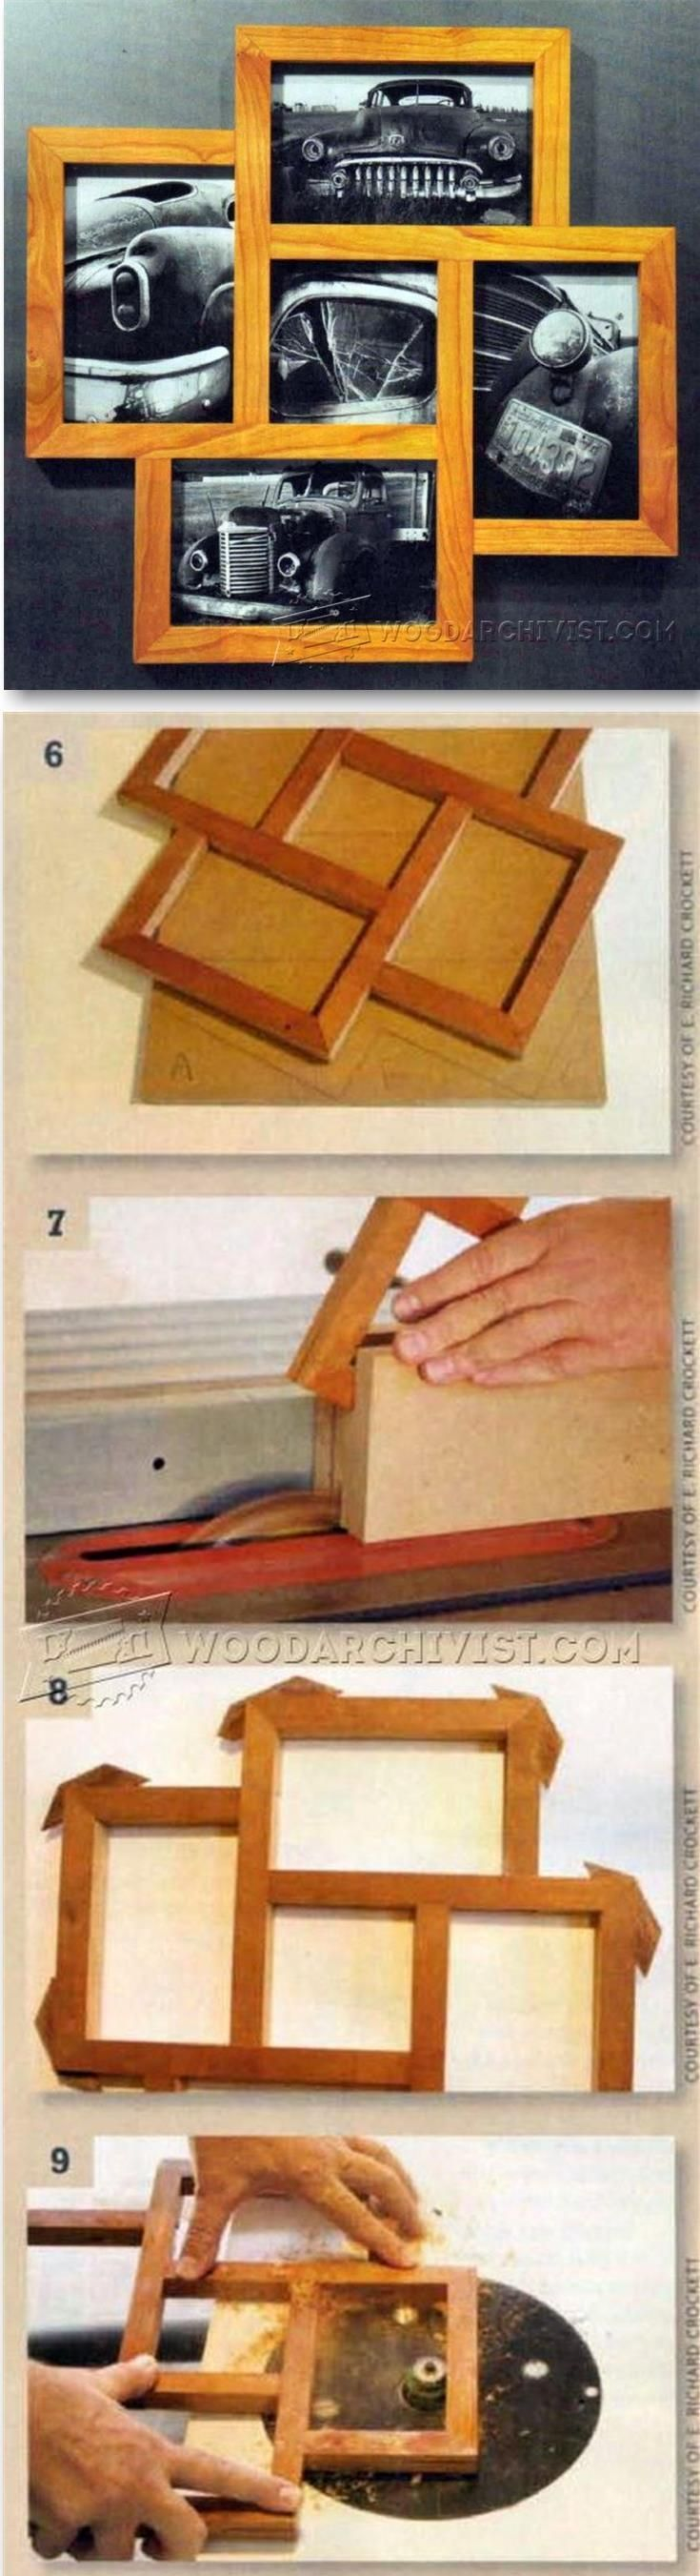 Five Photo Frame Plans Woodworking Plans